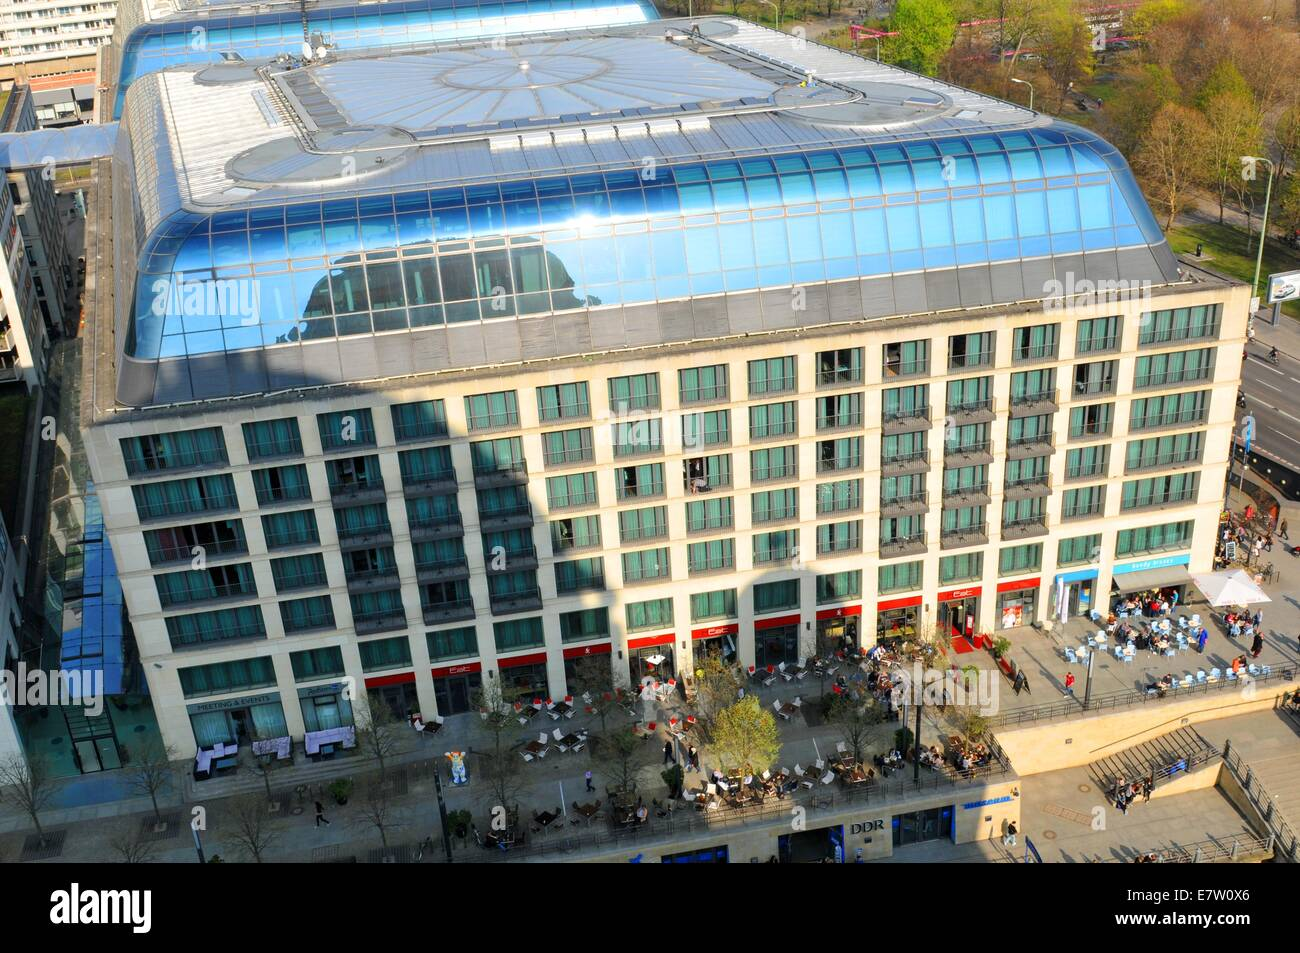 Aerial view of Radisson Blu hotel as seen from the Berlin cathedral dome - Stock Image